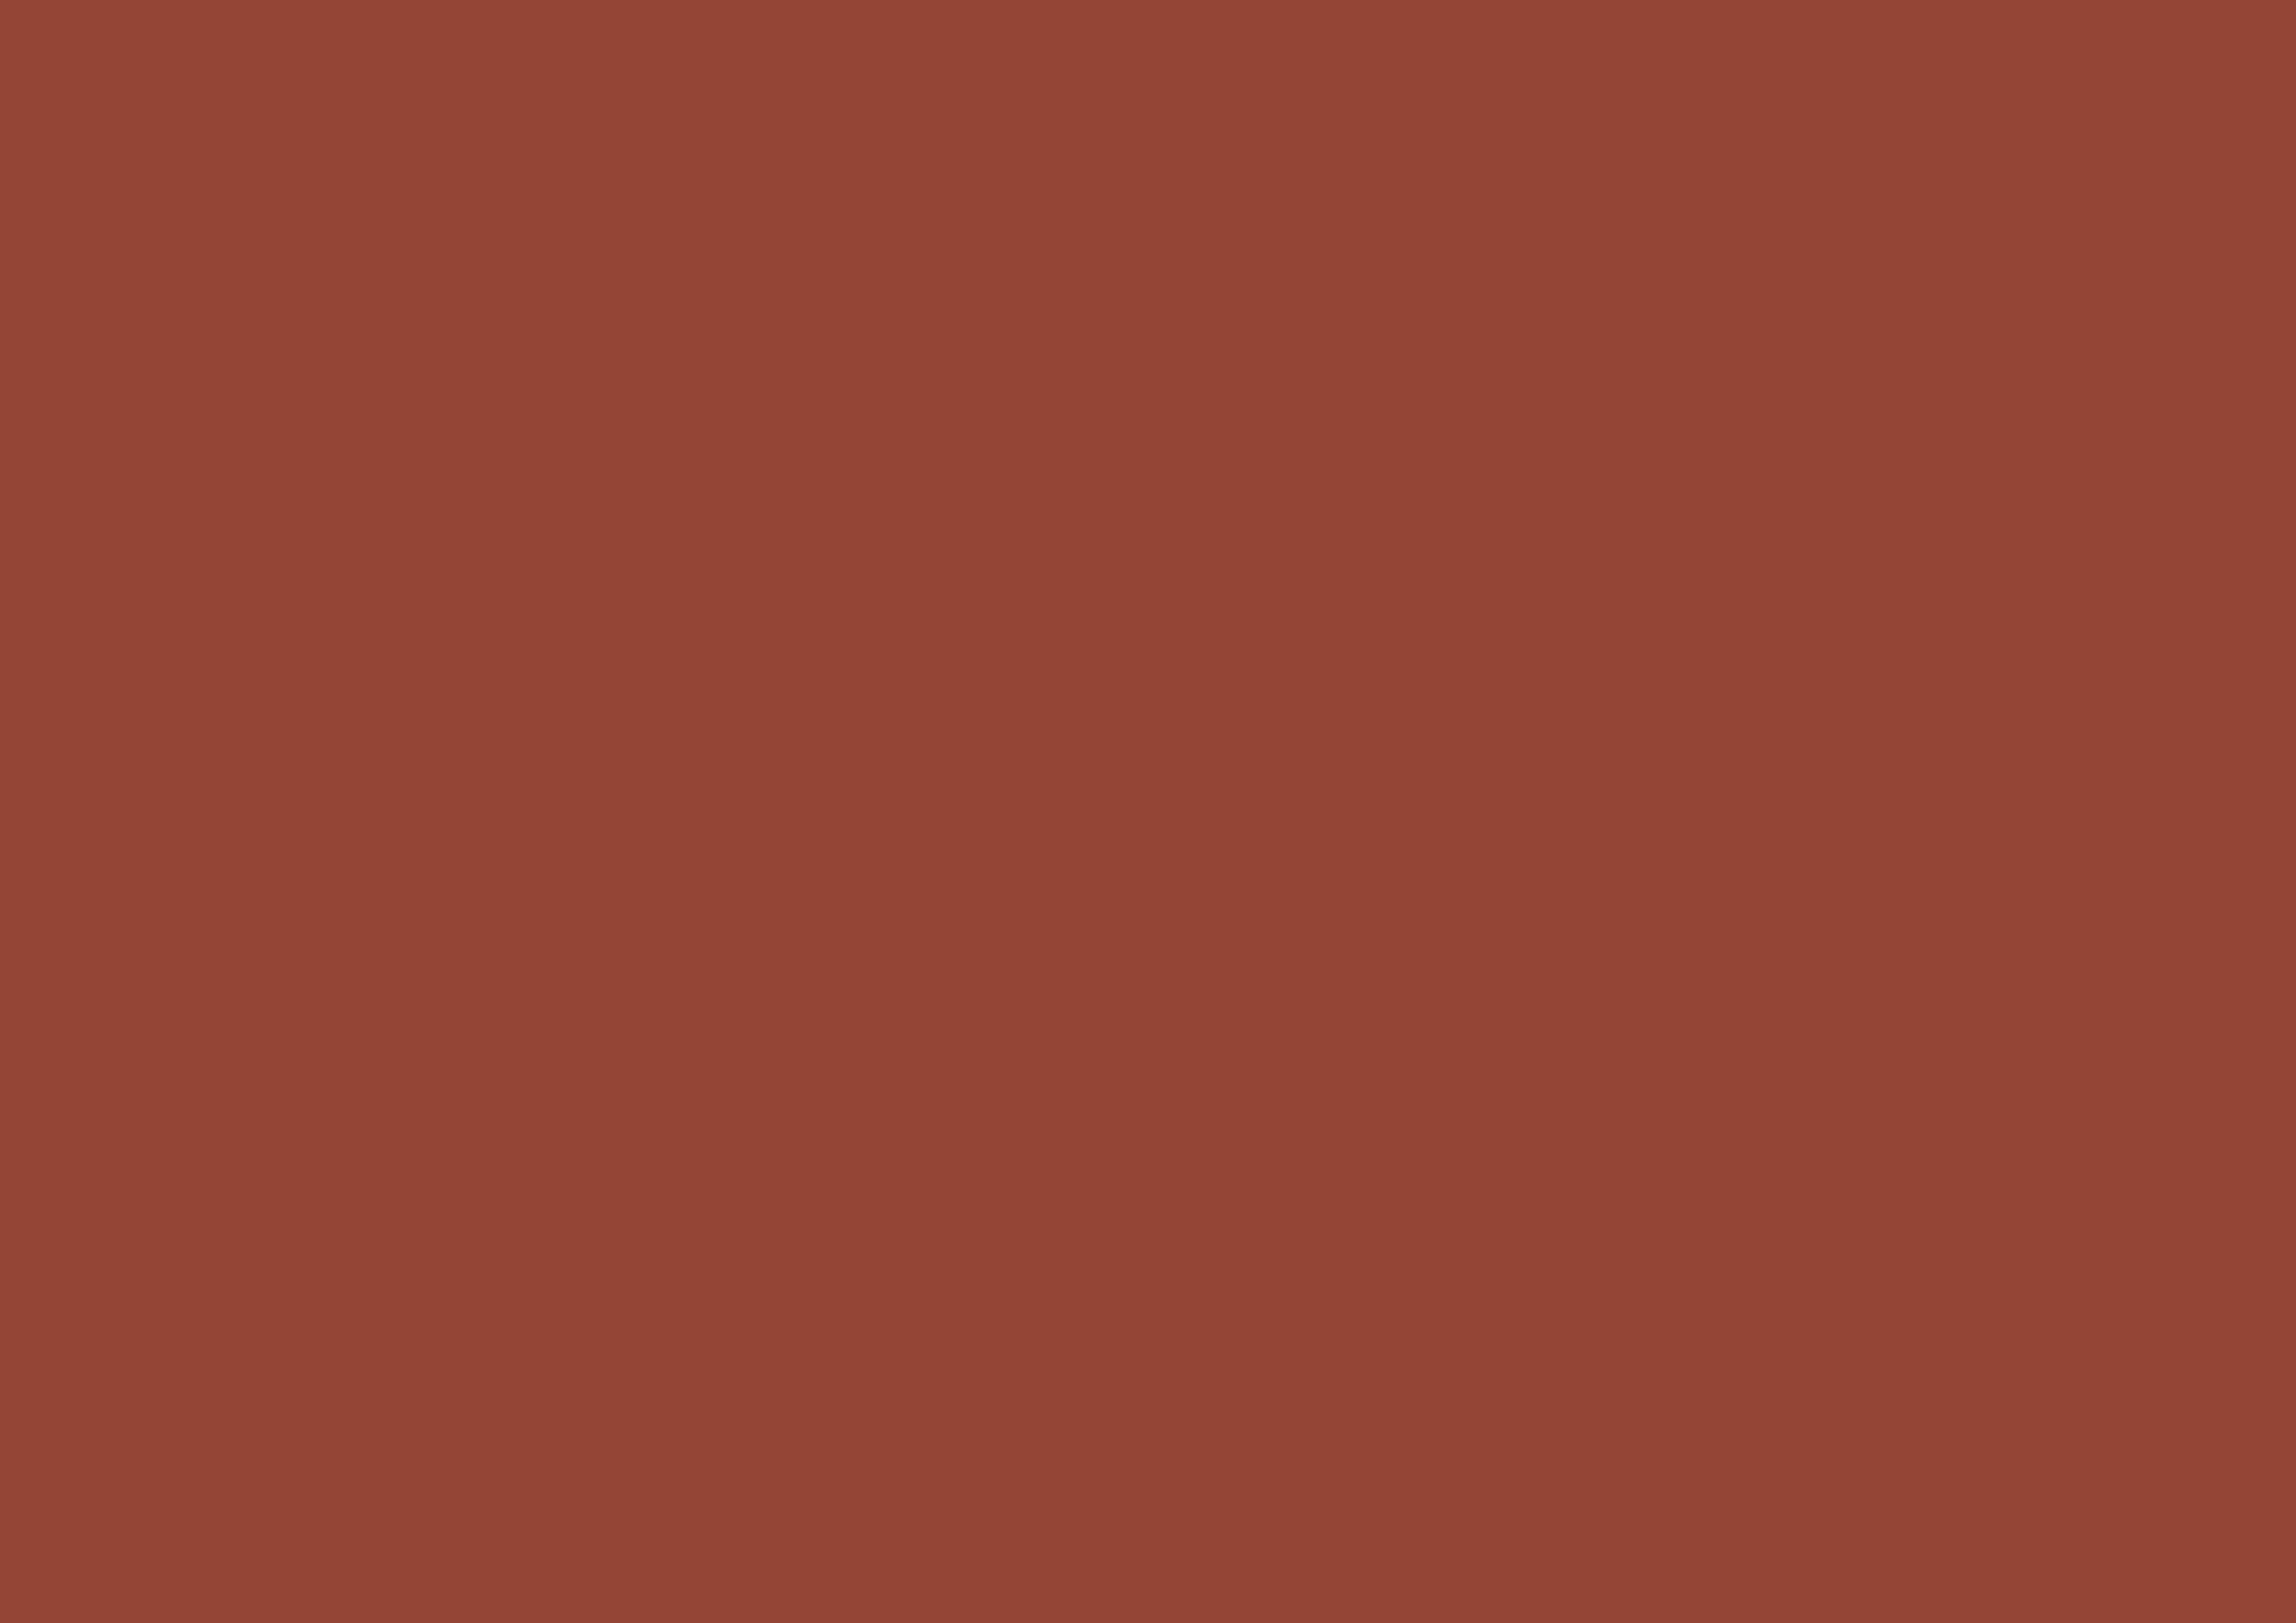 3508x2480 Chestnut Solid Color Background